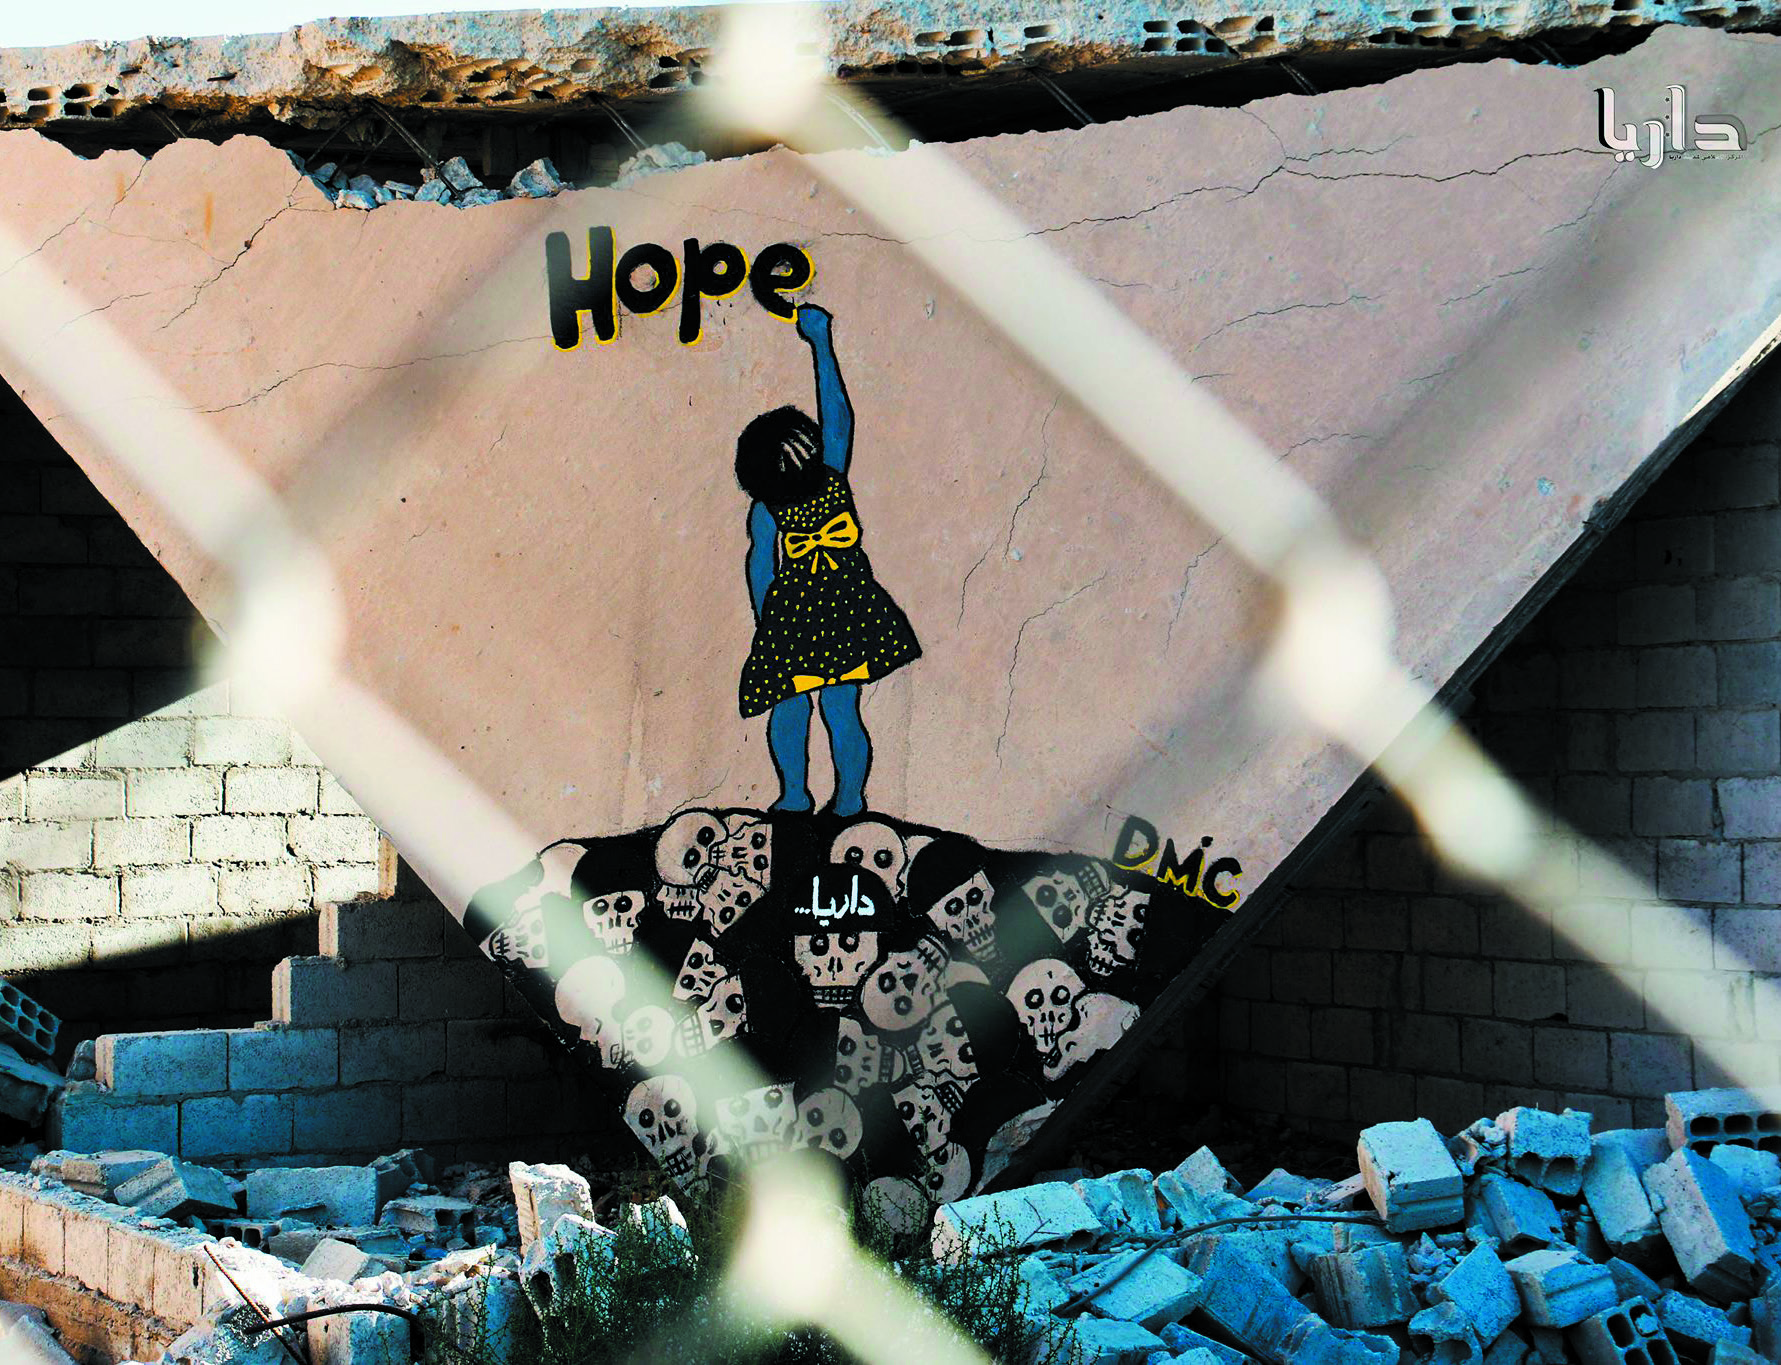 Hope, painted on a wall in Daraya in 2014